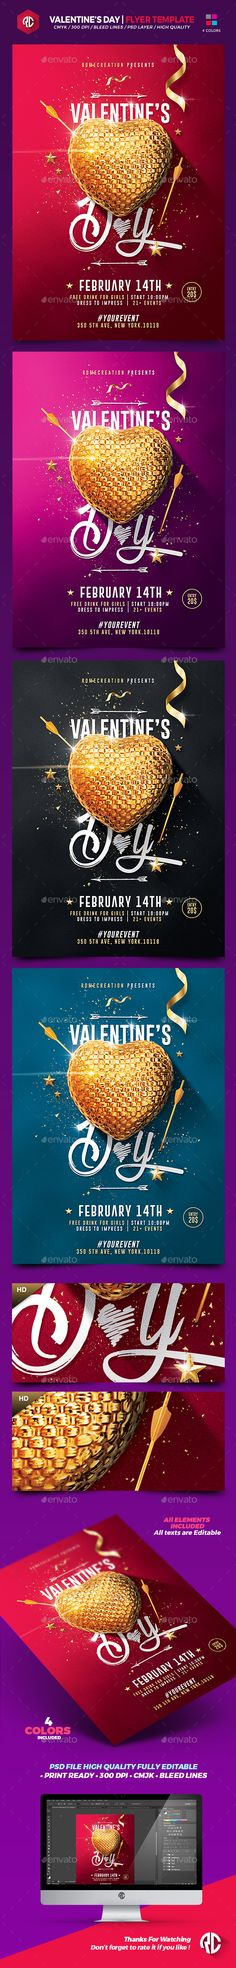 Valentine's Day Flyer Template PSD #design Download: http://graphicriver.net/item/valentines-day-flyer-template/14366135?ref=ksioks